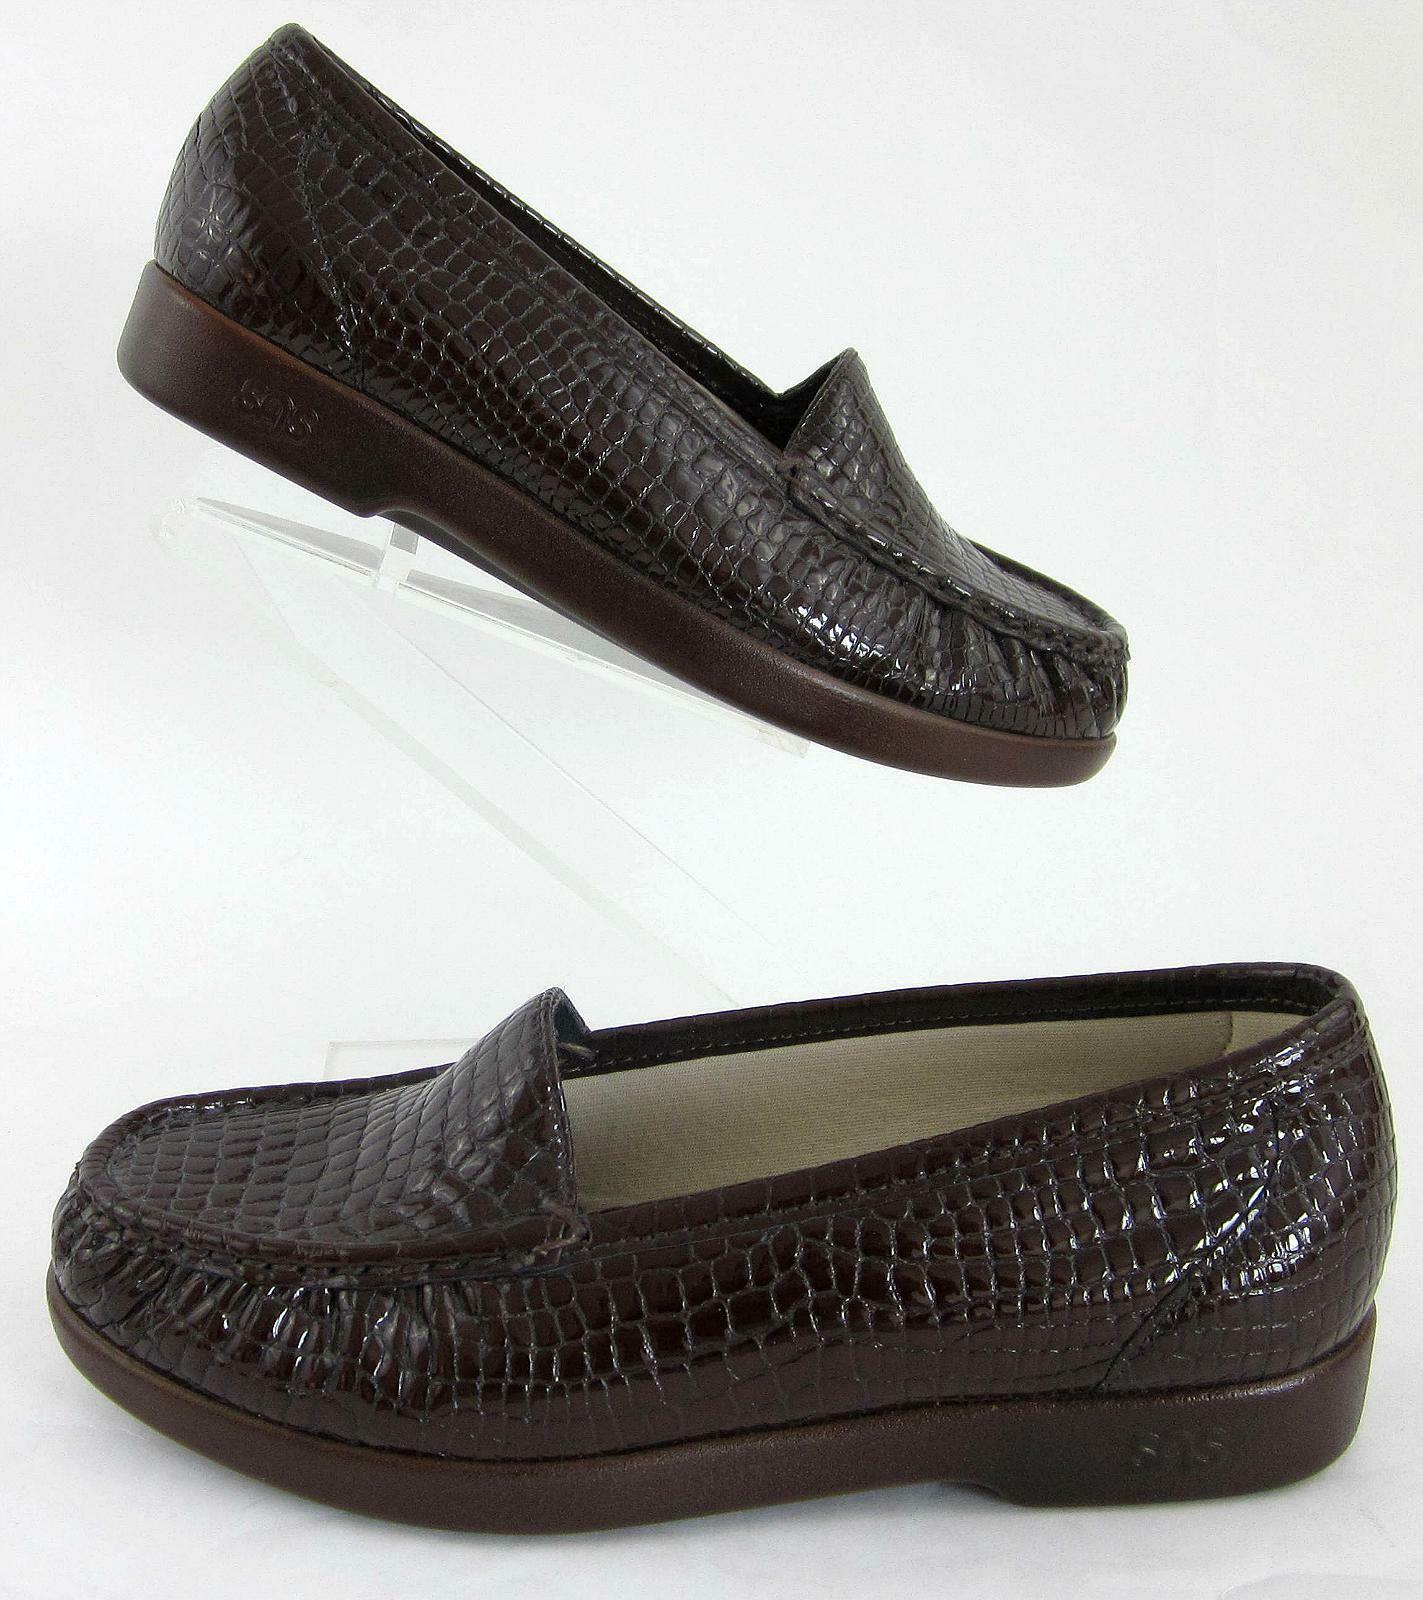 New  SAS Simplify Moccasin Loafers Brown Croc Leather Sz 6.5WW No Insoles